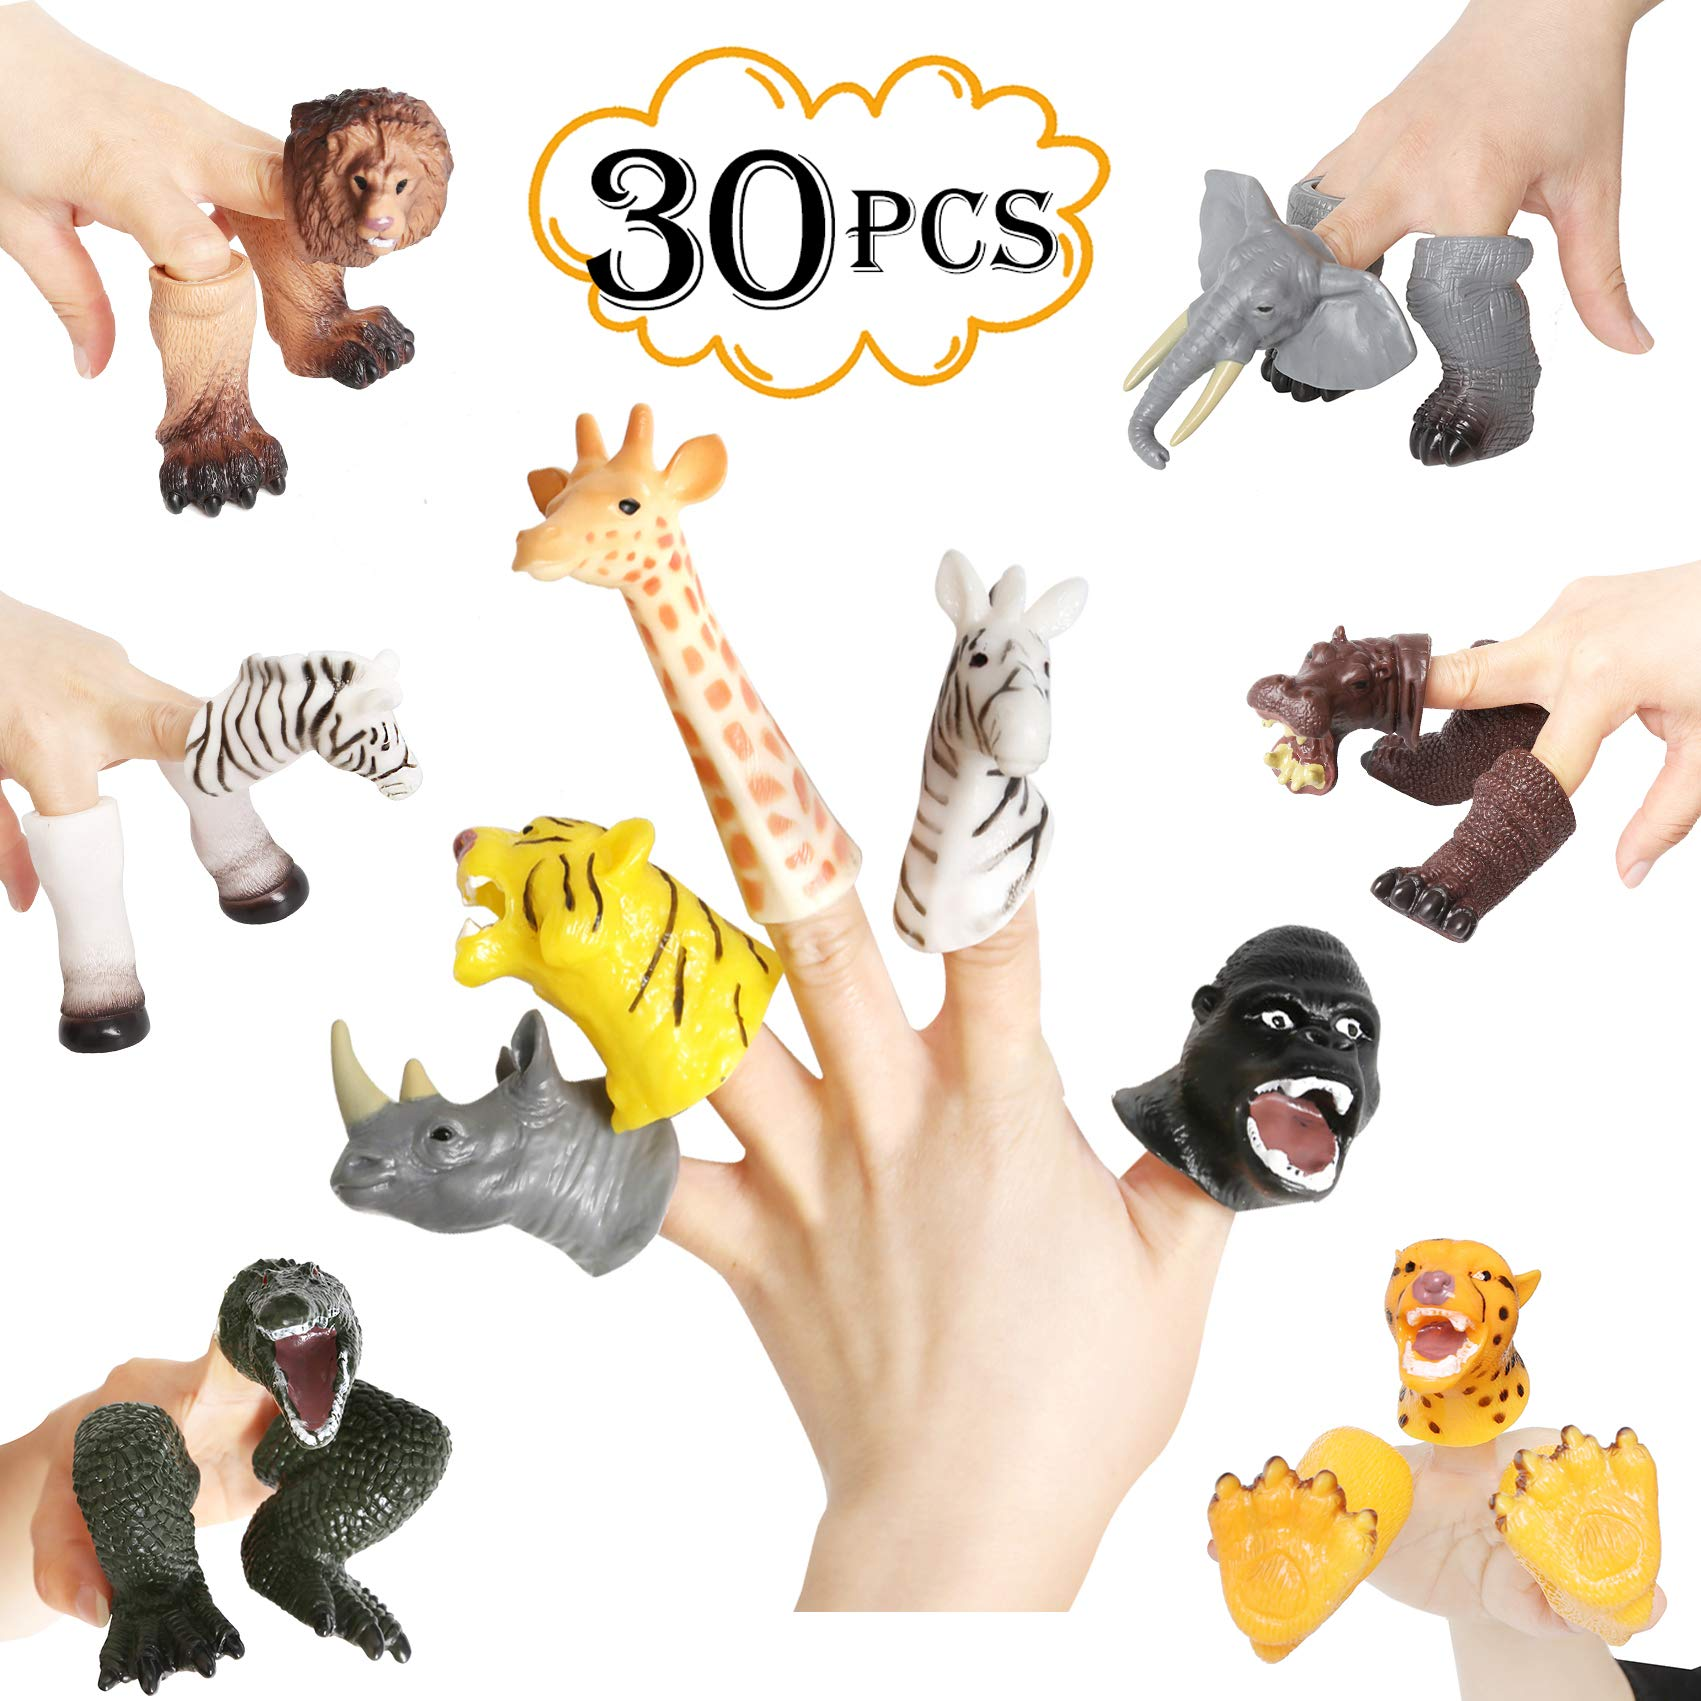 rainbow yuango 30PCS Realistic Animals Finger Puppets Playset Soft Vinyl Rubber Animal Head Finger Puppet with Feet Theaters Doll Model Toy for Kids